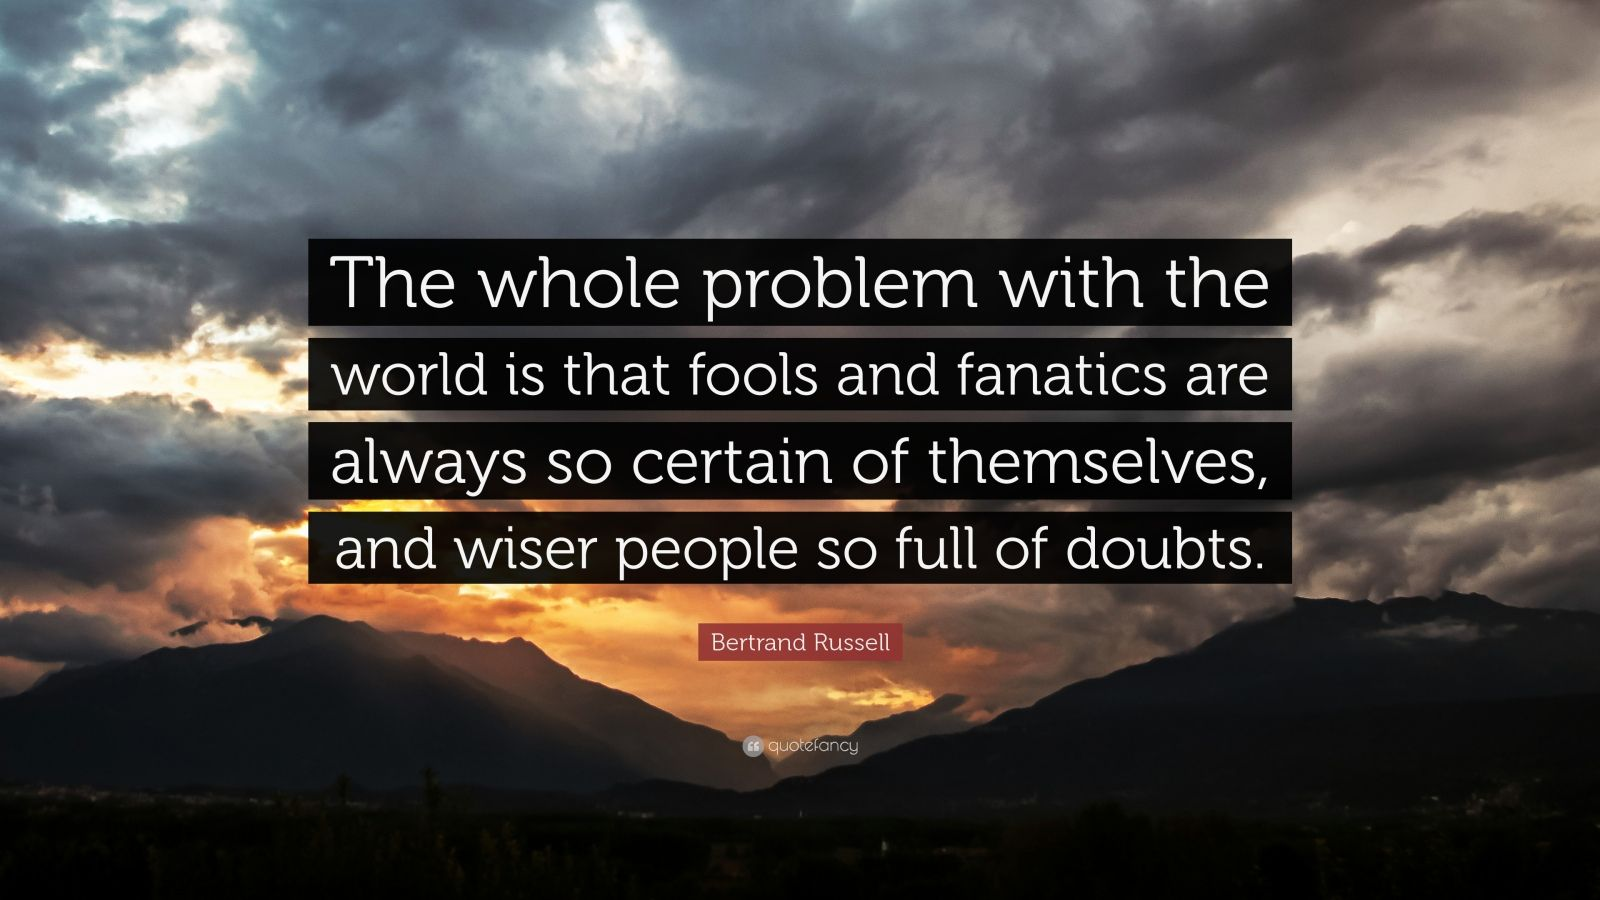 """Bertrand Russell Quote: """"The whole problem with the world is that fools and fanatics are always so certain of themselves, and wiser people so full of doubts."""""""